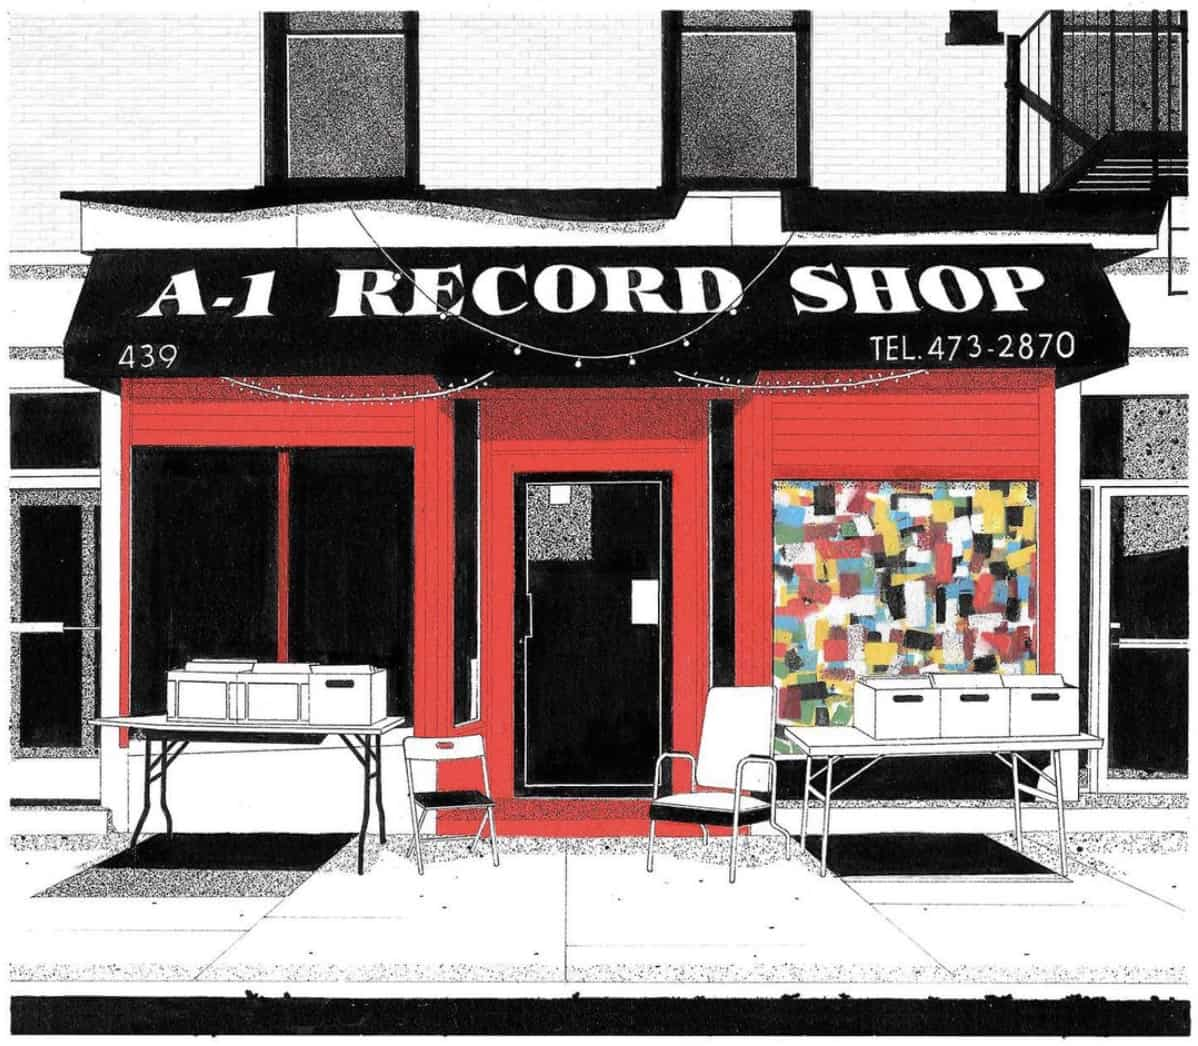 Illustration of a Brooklyn record shop storefront.